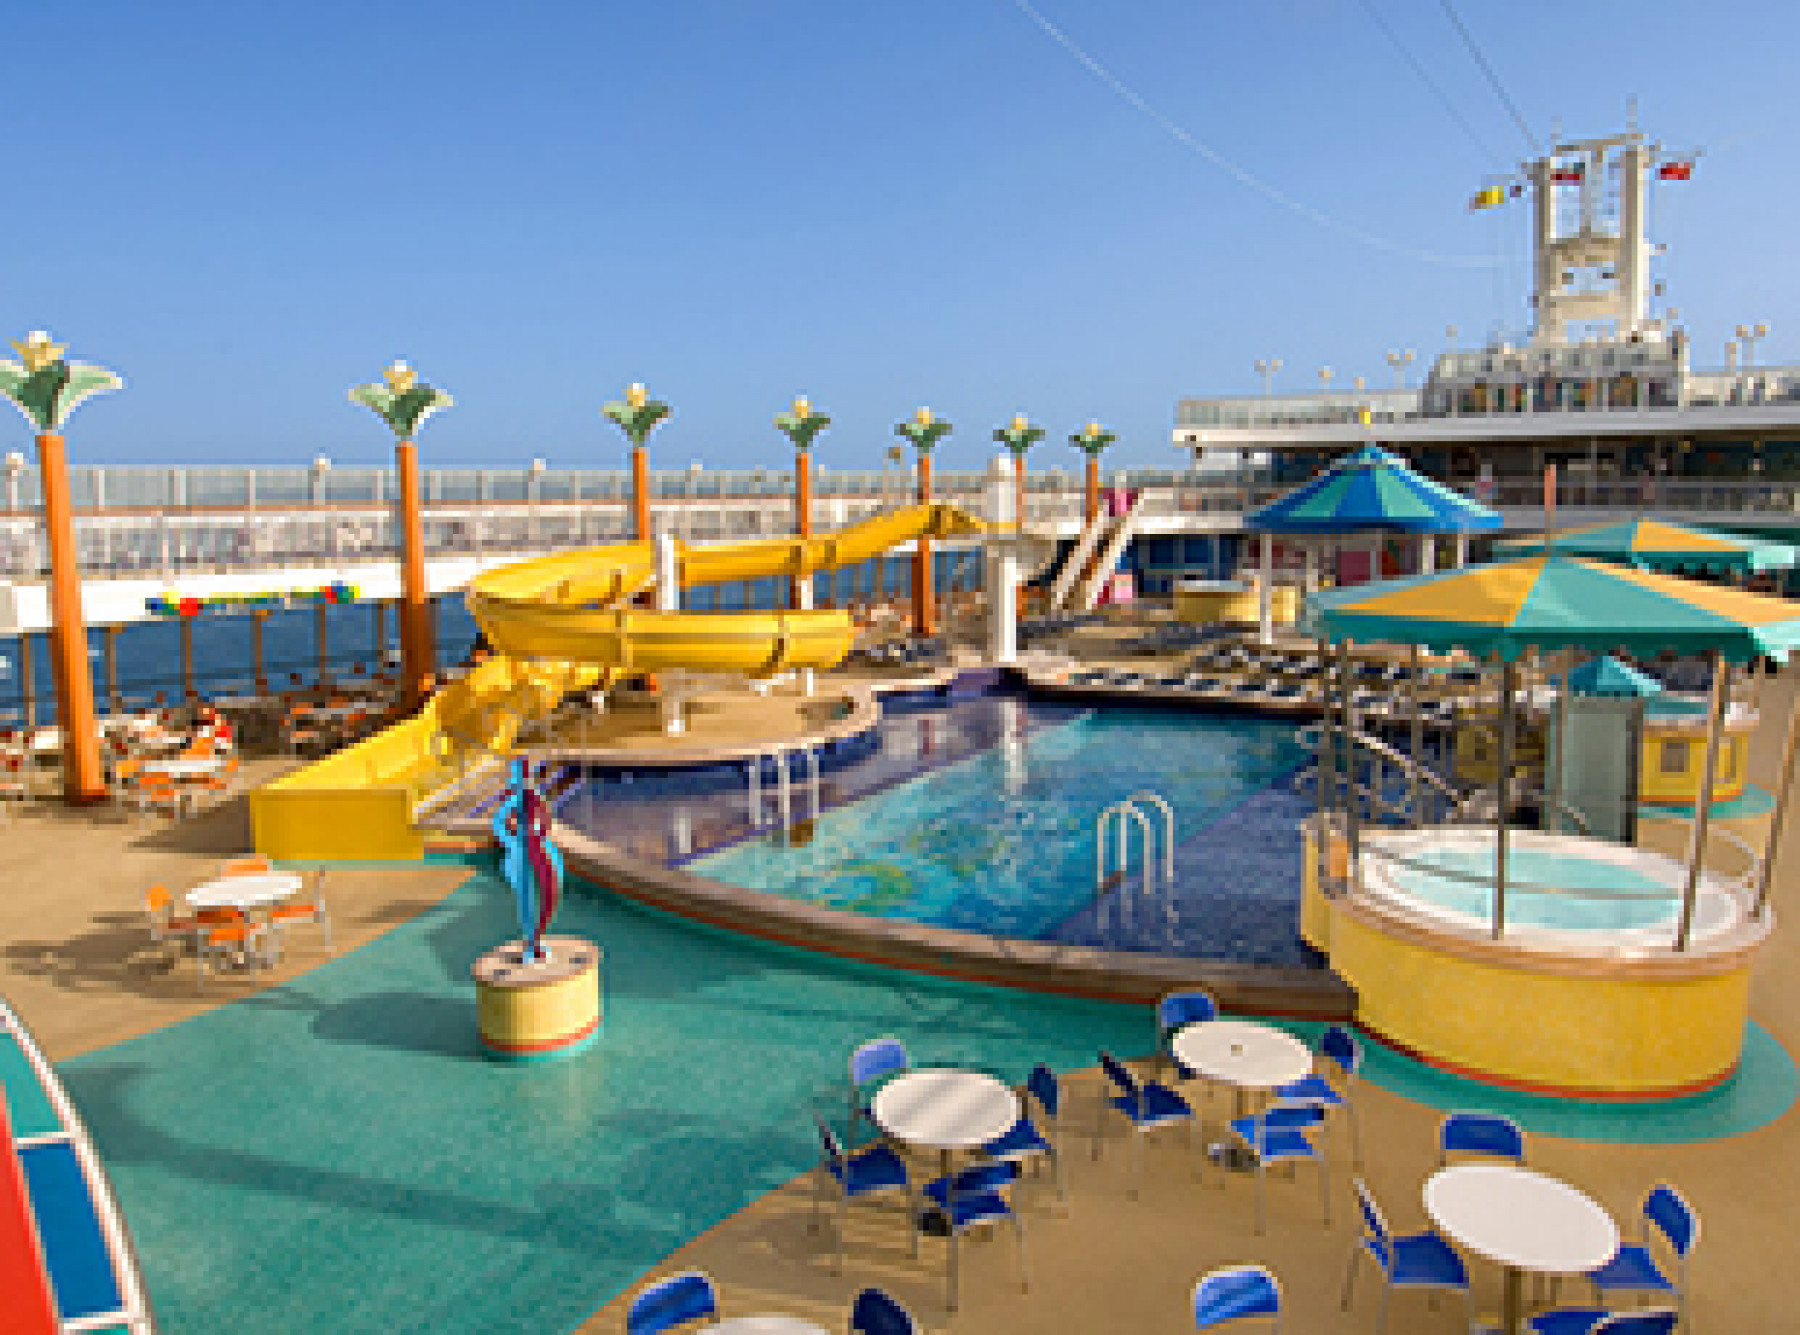 Norwegian Cruise Line Norwegian Jewel Exterior Sapphire Pools.jpg